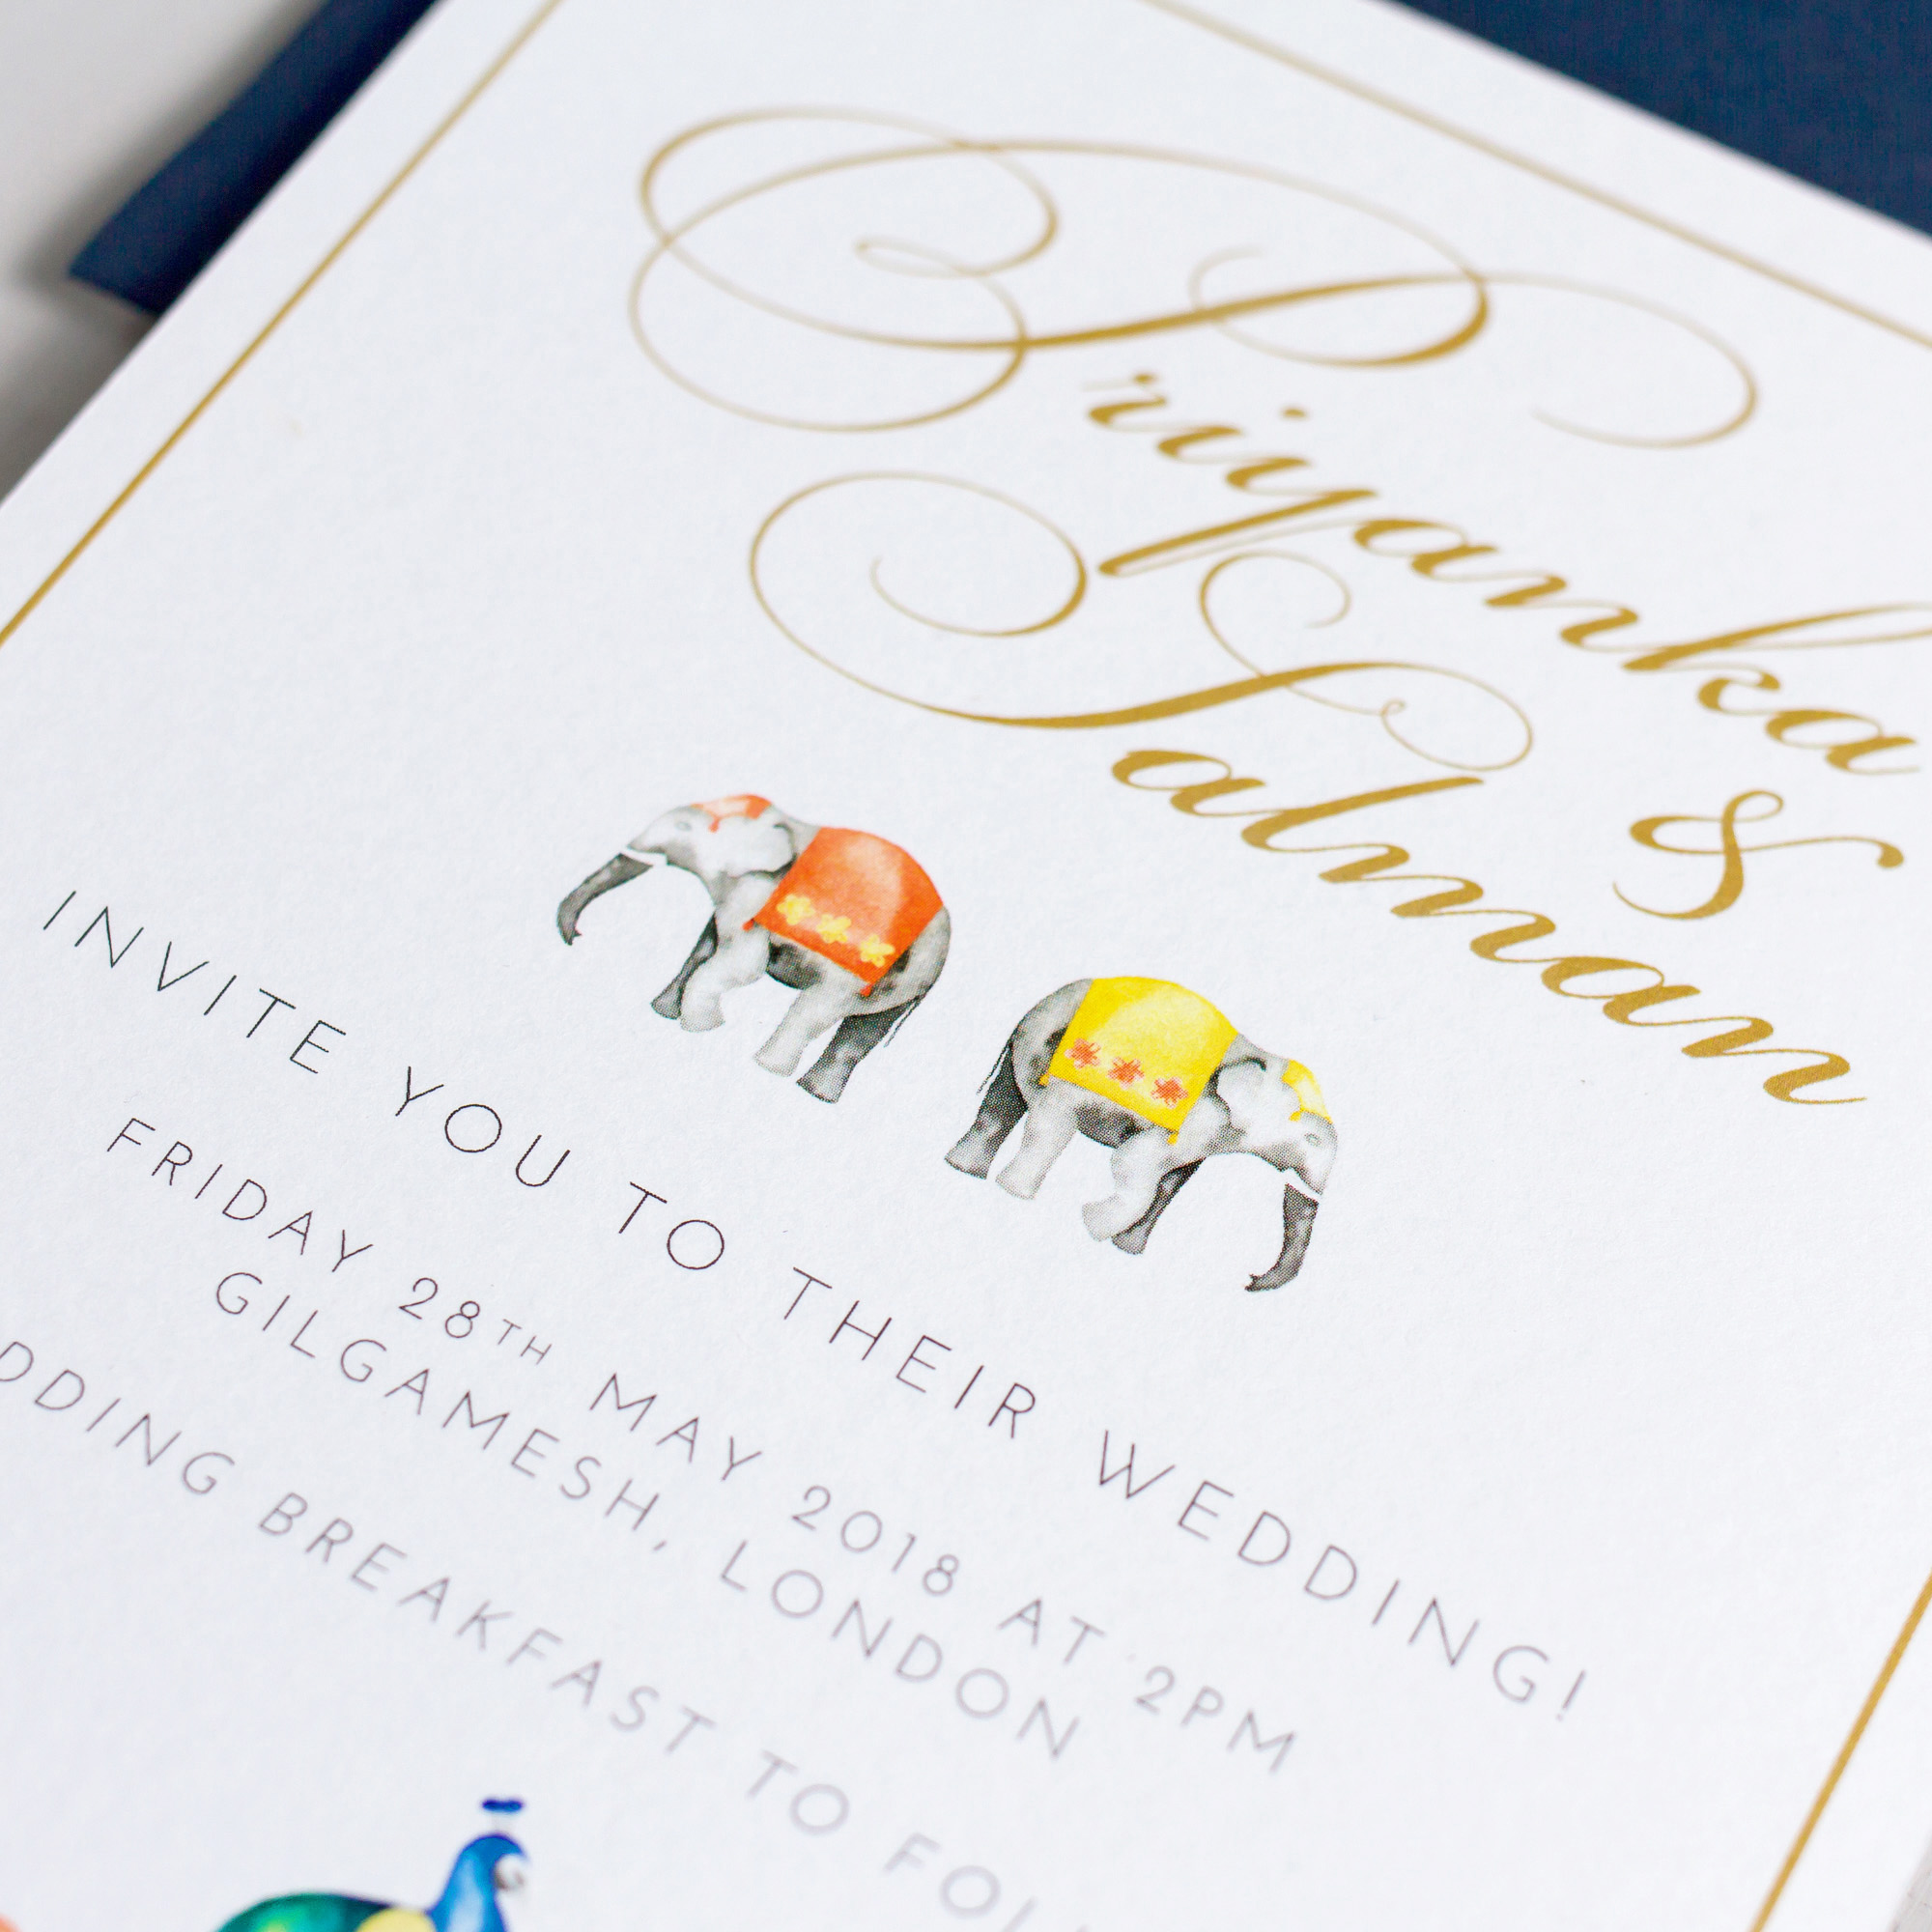 Indian-Summer-Wedding-Stationery-Luxury-Unique-Hand-Painted-Botanical-Peacock-Elephant-Summer-Bright-Gold-Hand-Painted-Wedding-Invitation-Details-Pingle-Pie.jpg